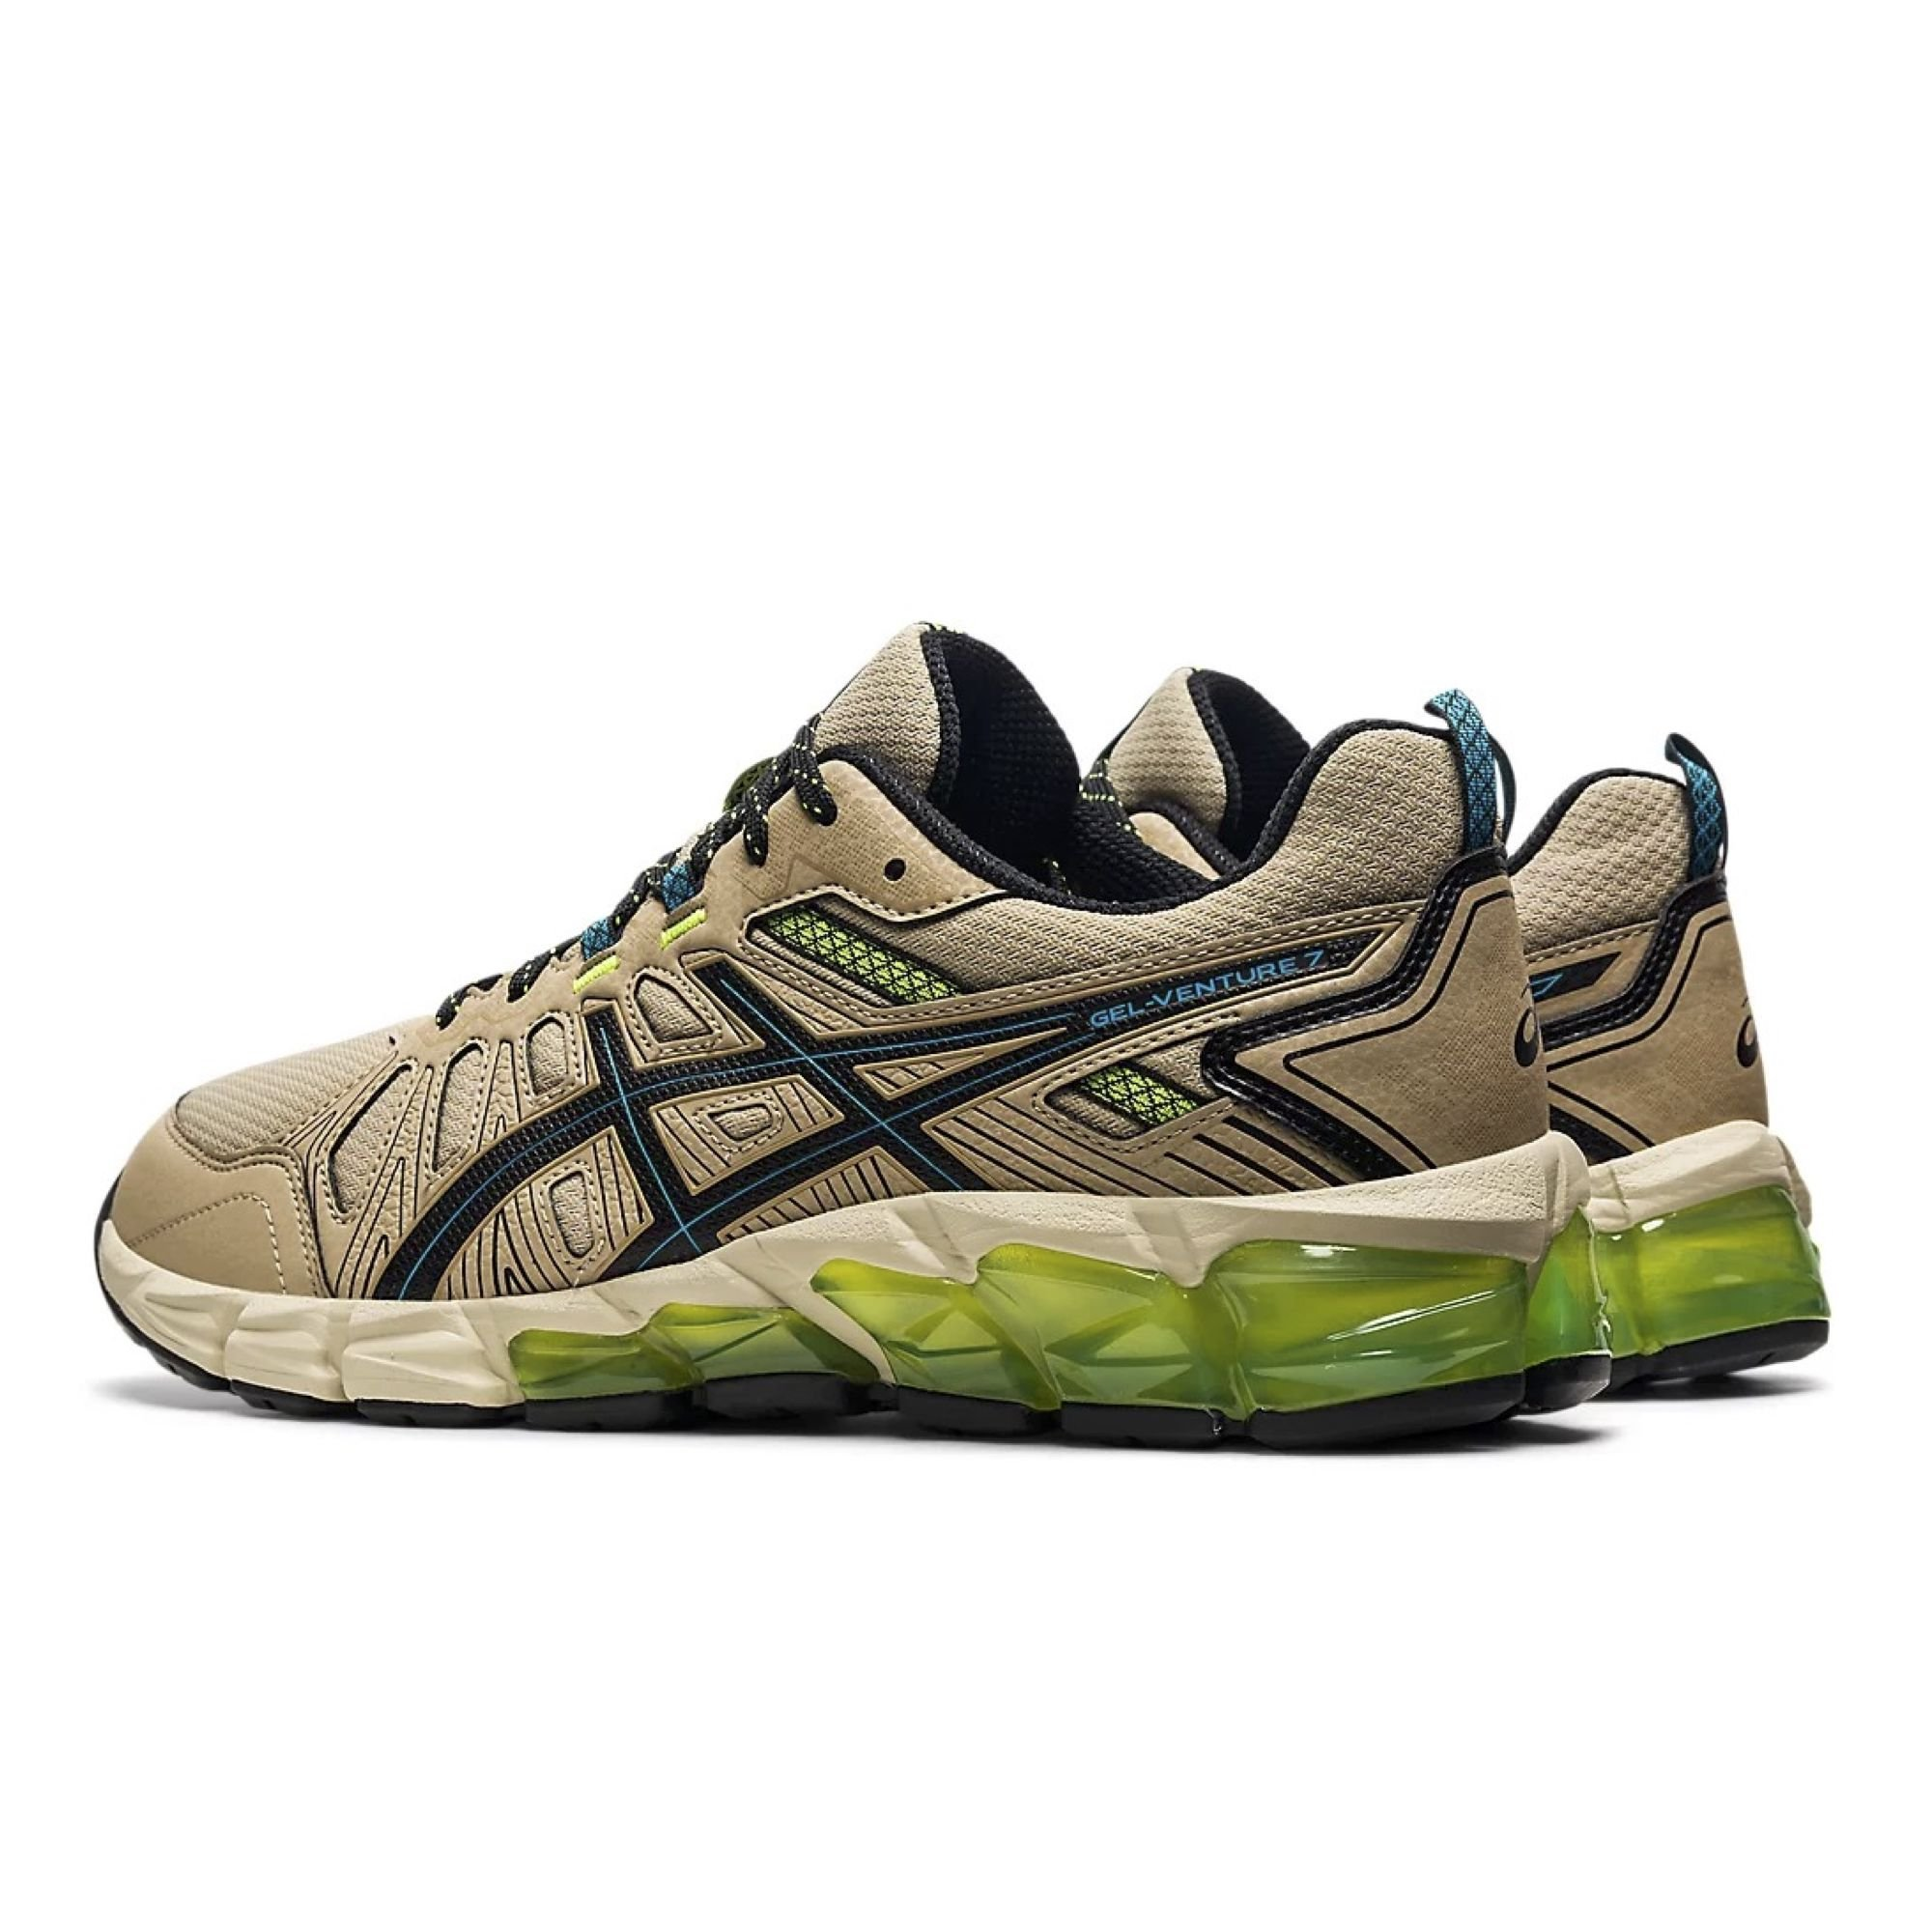 Asics GEL-VENTURE™ 180 wood crepe black